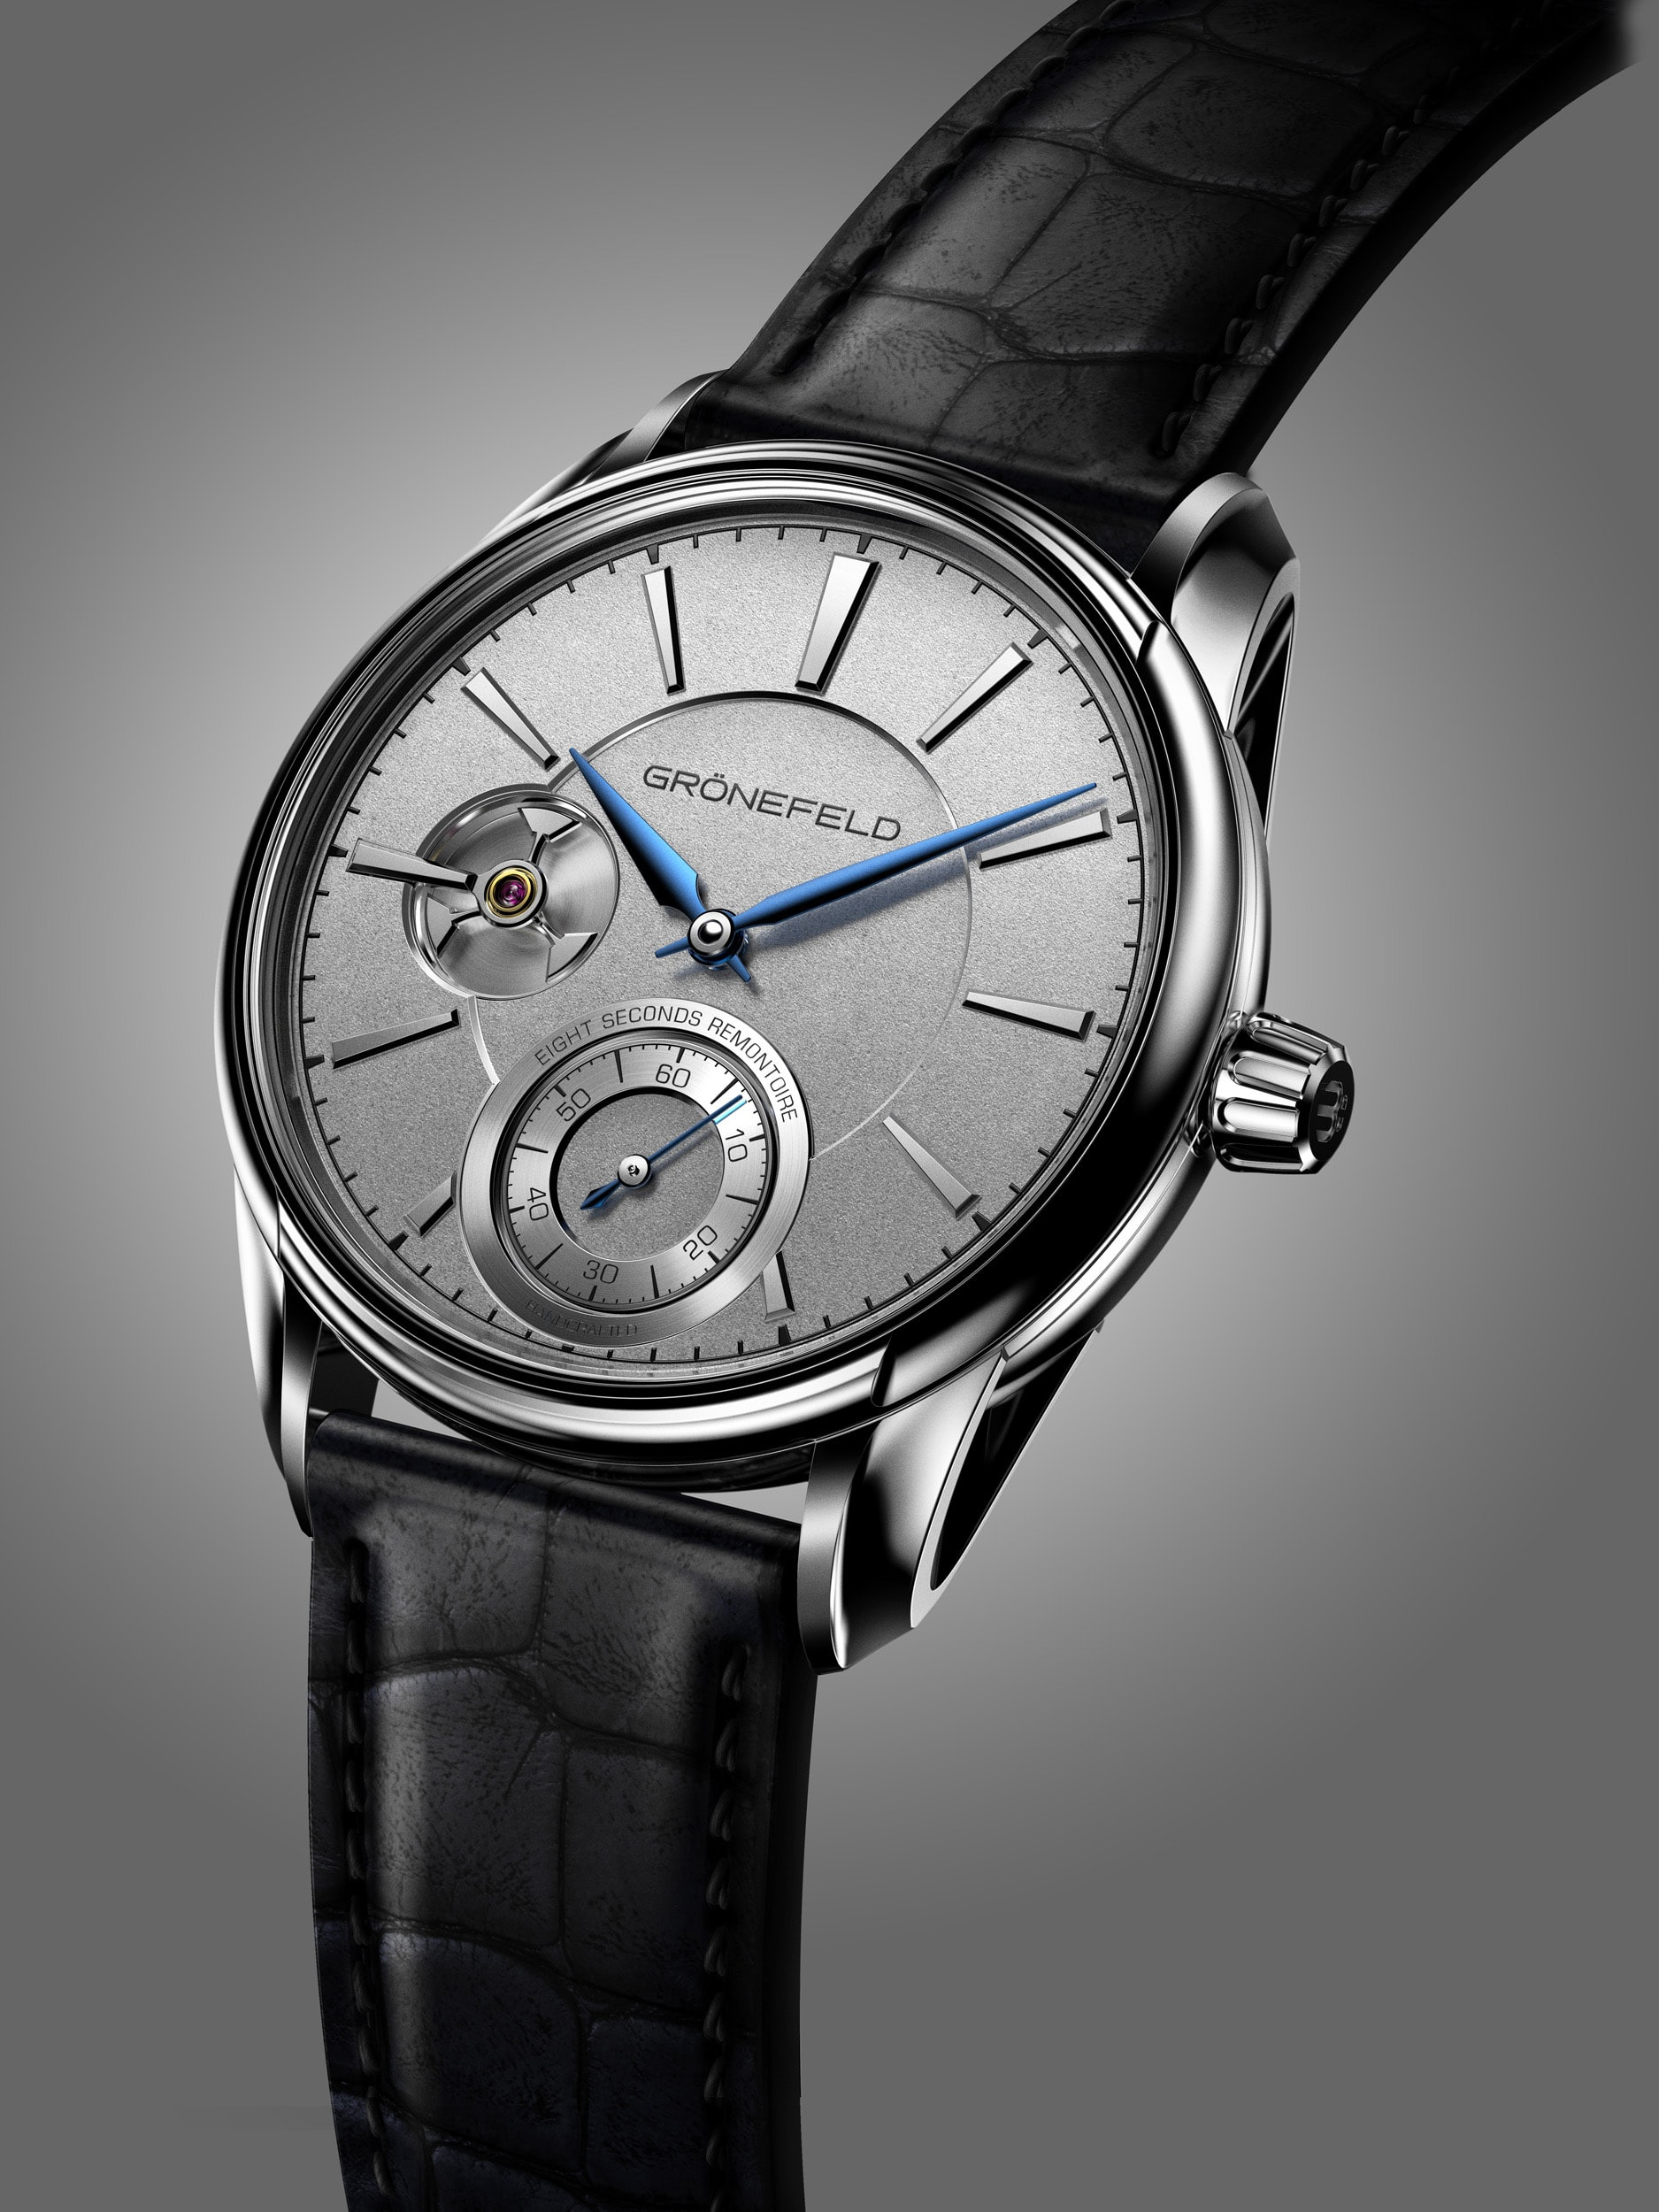 Introducing: The Grnefeld 1941 Remontoire, Inspired By A Church Clock In The Grnefeld Family's Care For Two Generations Introducing: The Grnefeld 1941 Remontoire, Inspired By A Church Clock In The Grnefeld Family's Care For Two Generations 6 Remontoire WG Front View